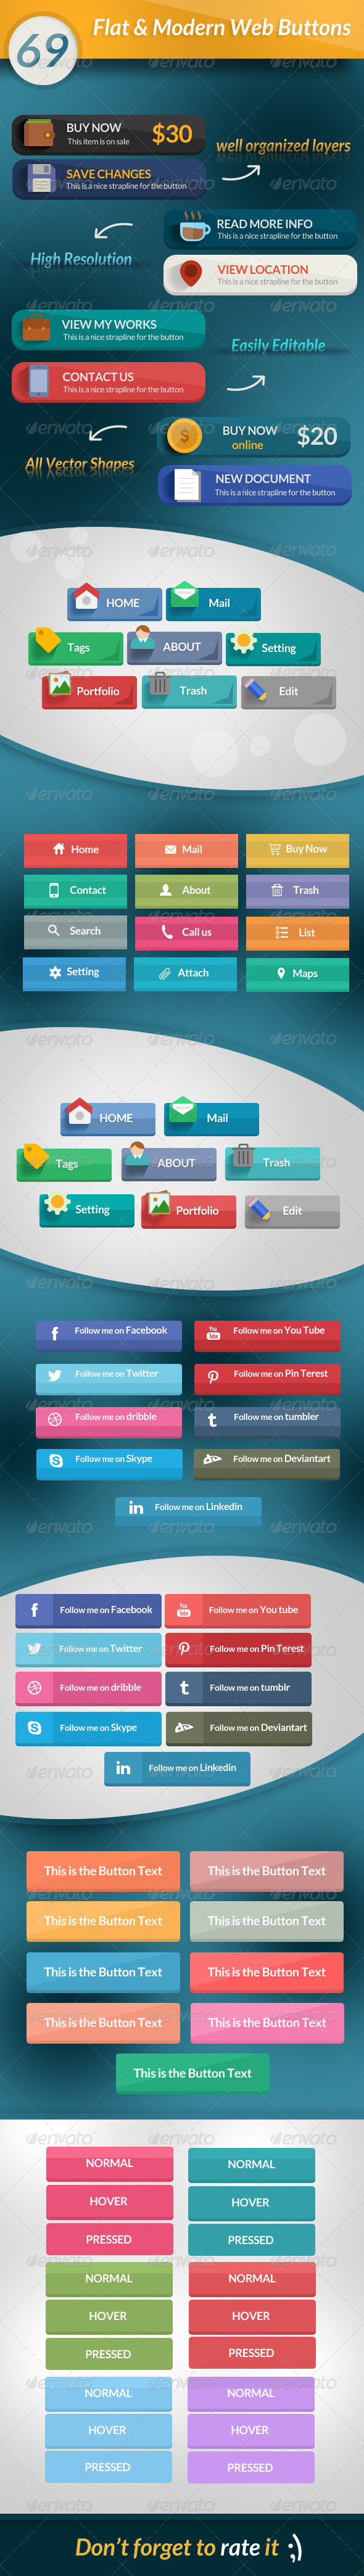 GraphicRiver 69 Flat & Modern Web Buttons 6770377